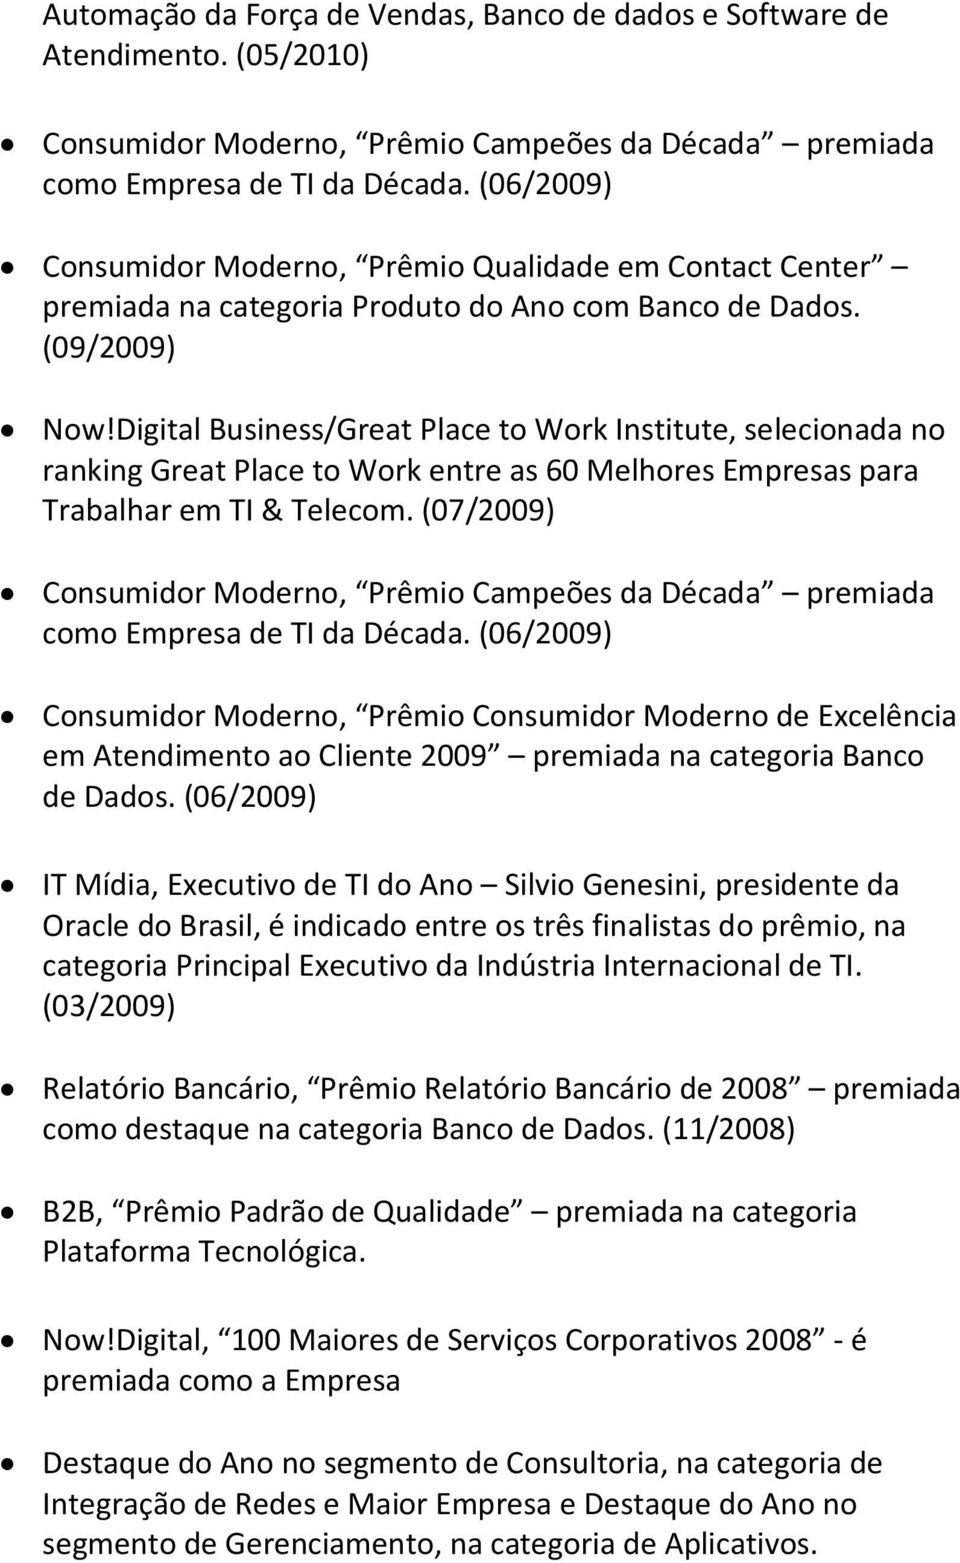 Digital Business/Great Place to Work Institute, selecionada no ranking Great Place to Work entre as 60 Melhores Empresas para Trabalhar em TI & Telecom.